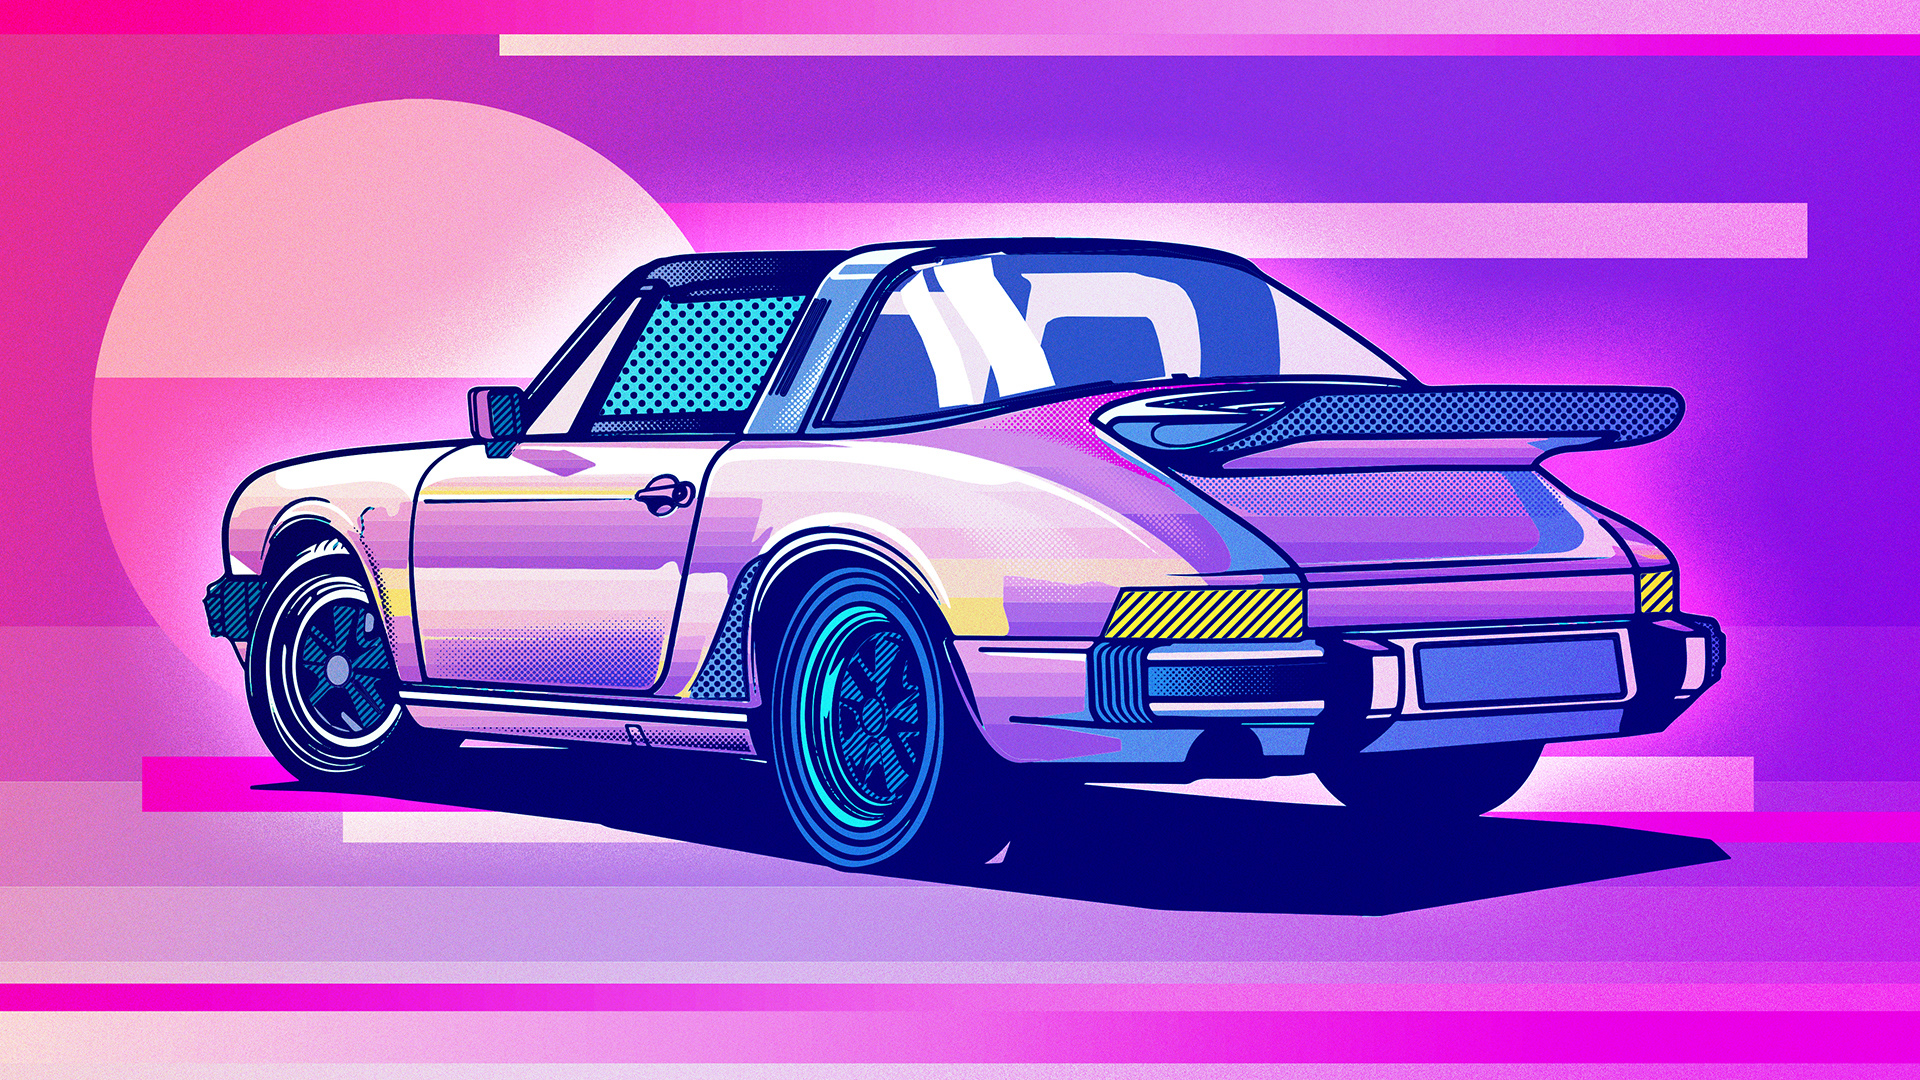 Porsche 911 Classic Illustration Hd Artist 4k Wallpapers Images Backgrounds Photos And Pictures